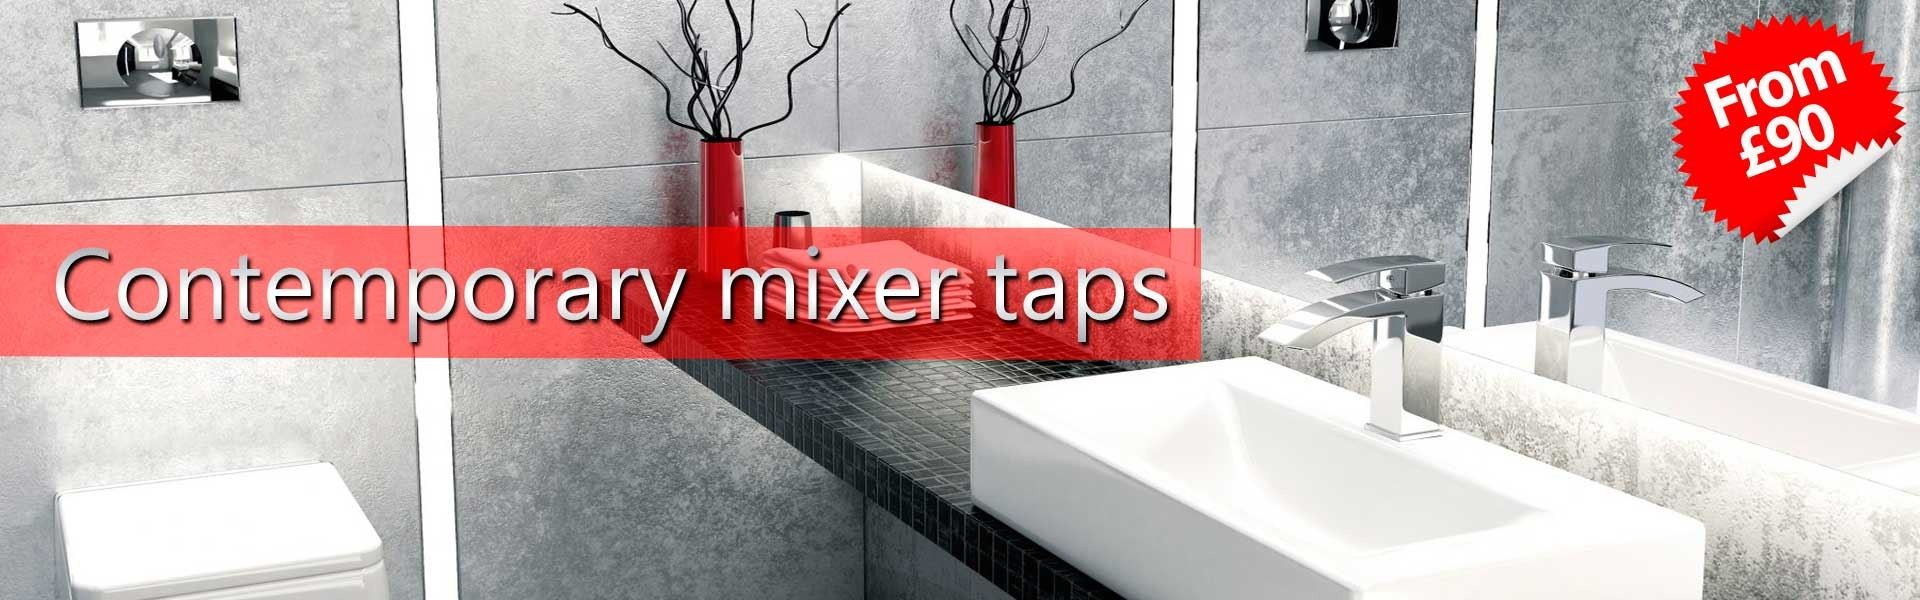 Bathroom Taps Mixers